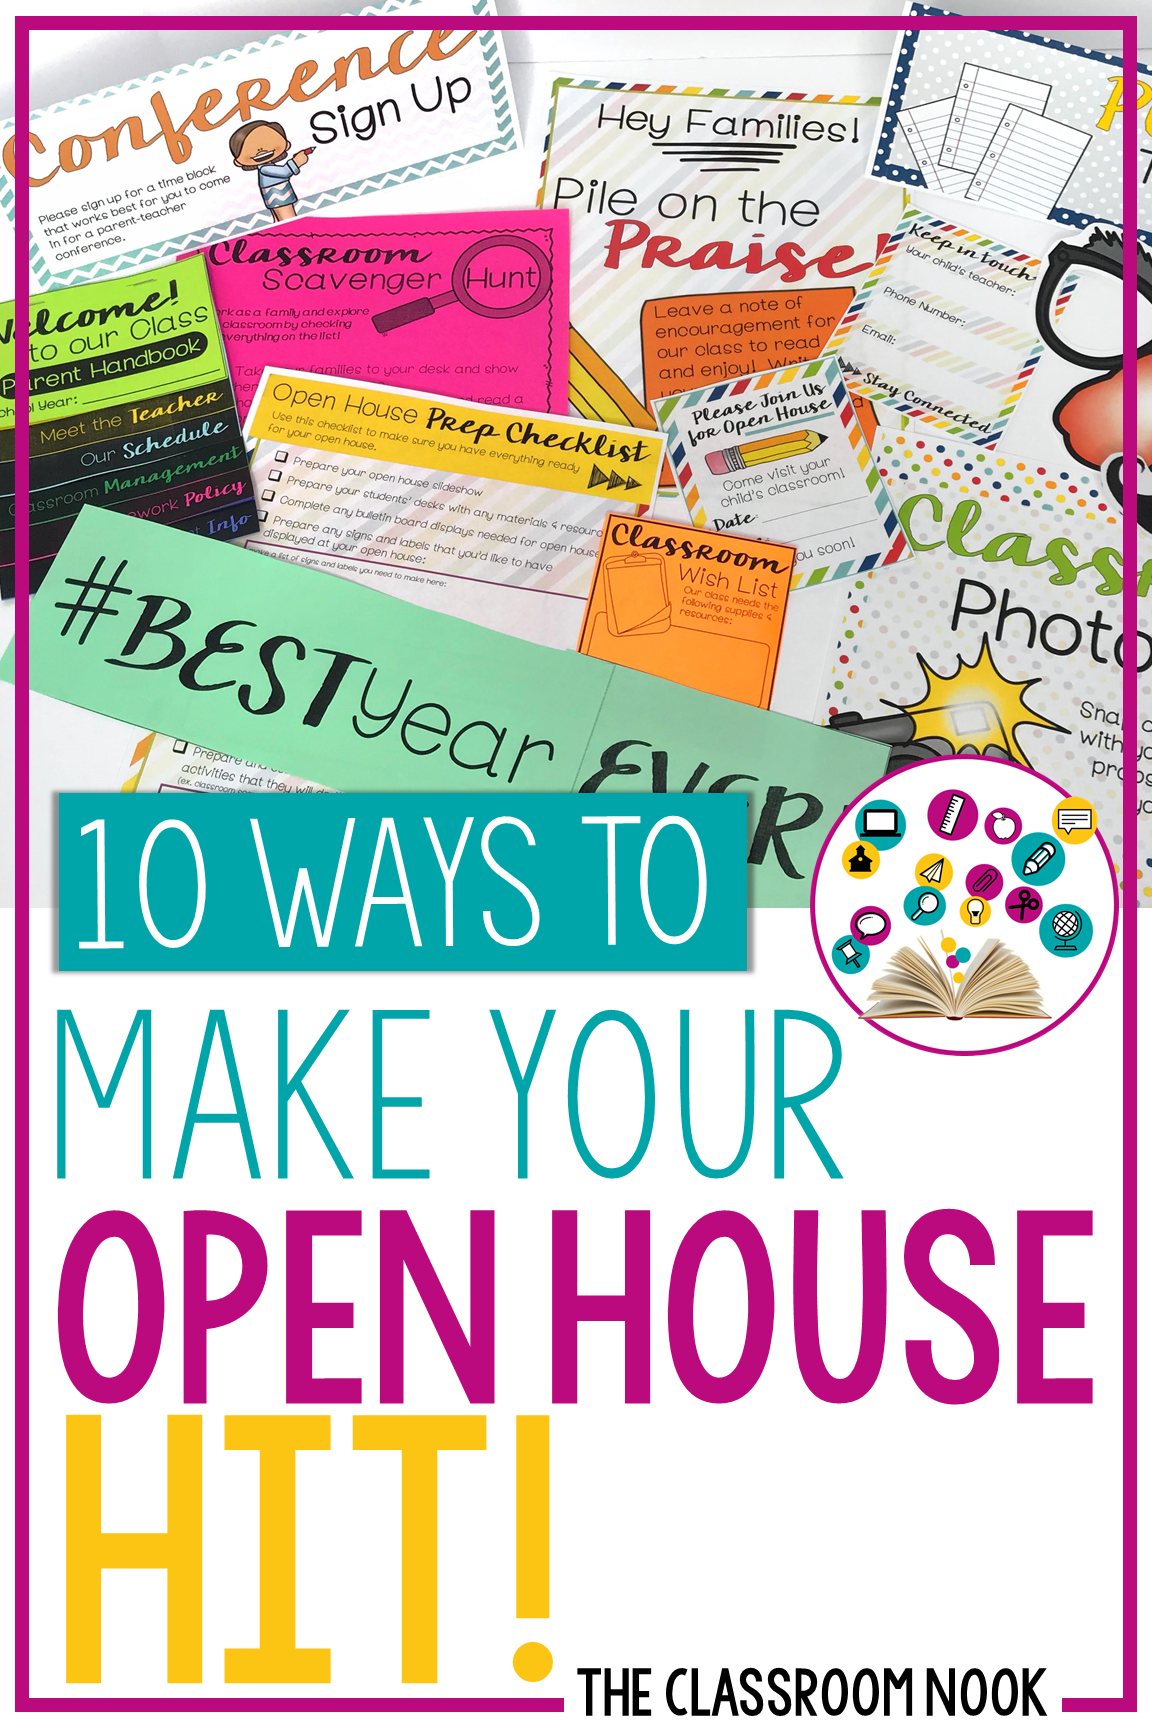 Looking for some great back to school ideas for parent's night or open house this year! Try one of these 10 ways to make your open house a hit! #openhouse #backtoschool #parentsnight